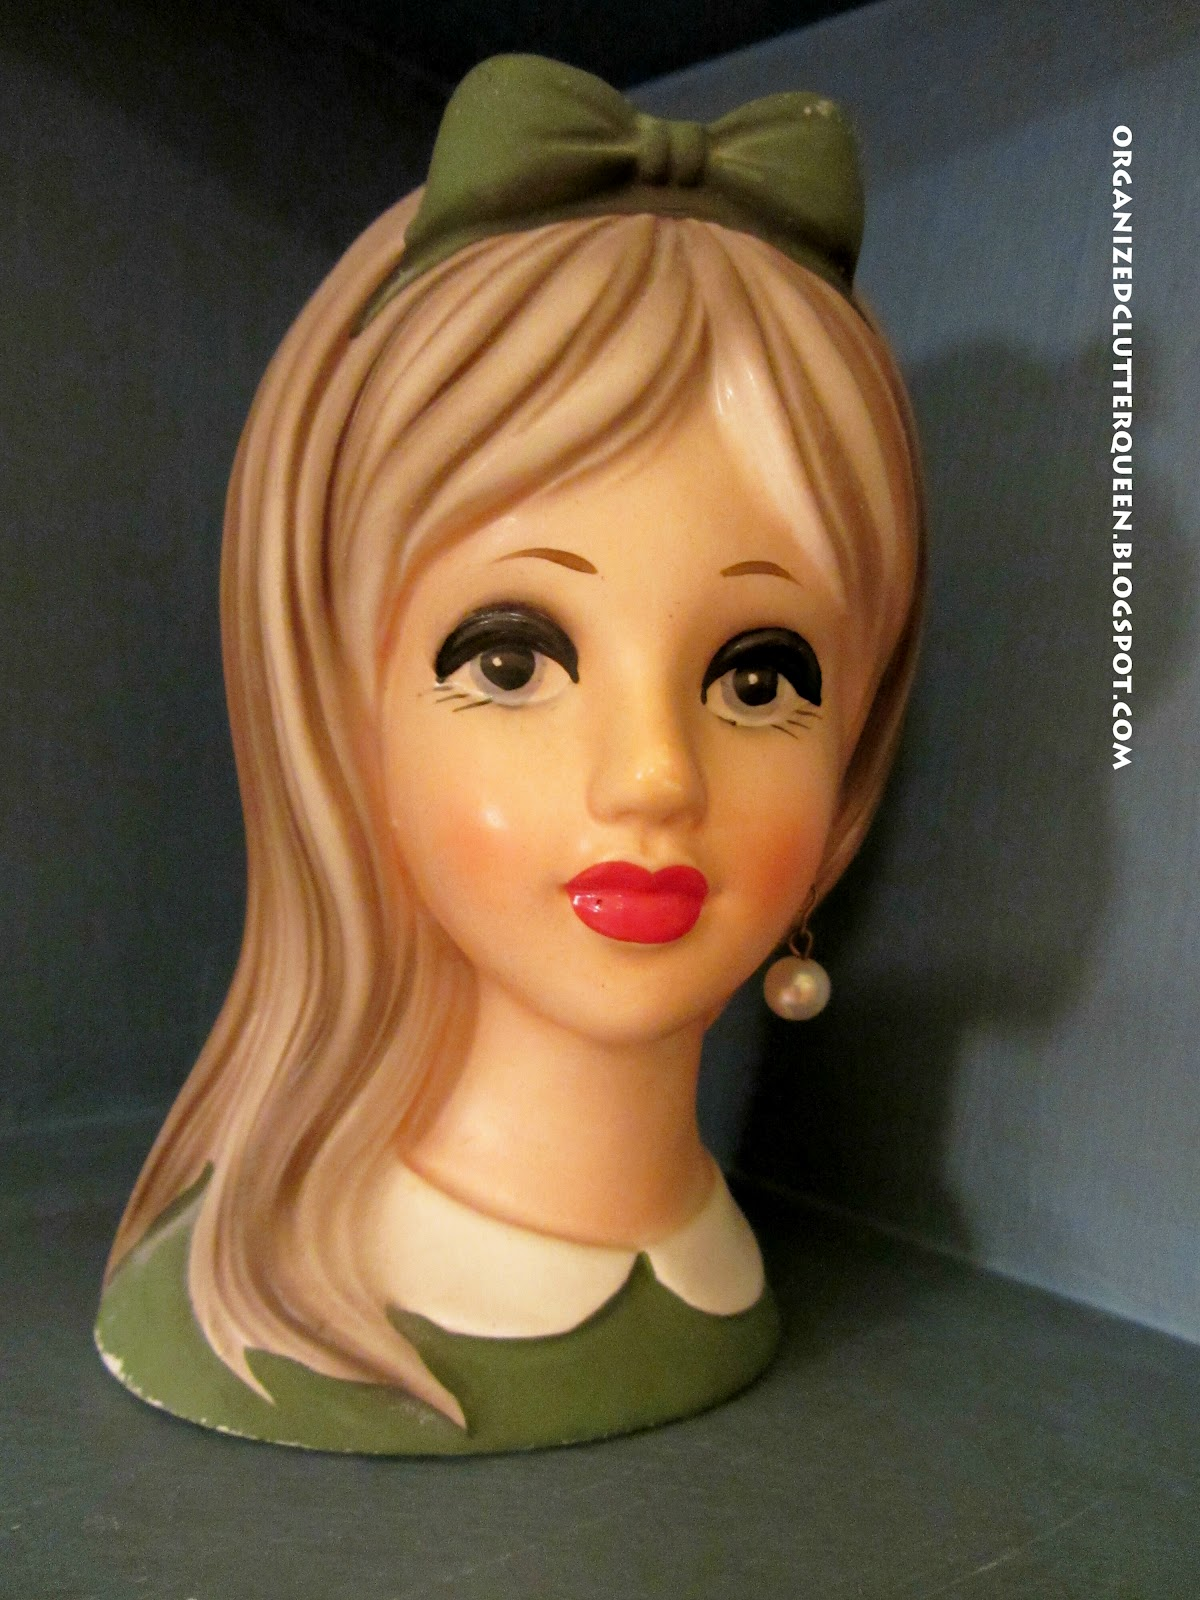 My vintage bathroom lady head vases organized clutter she is a teeny bopper by napco reviewsmspy